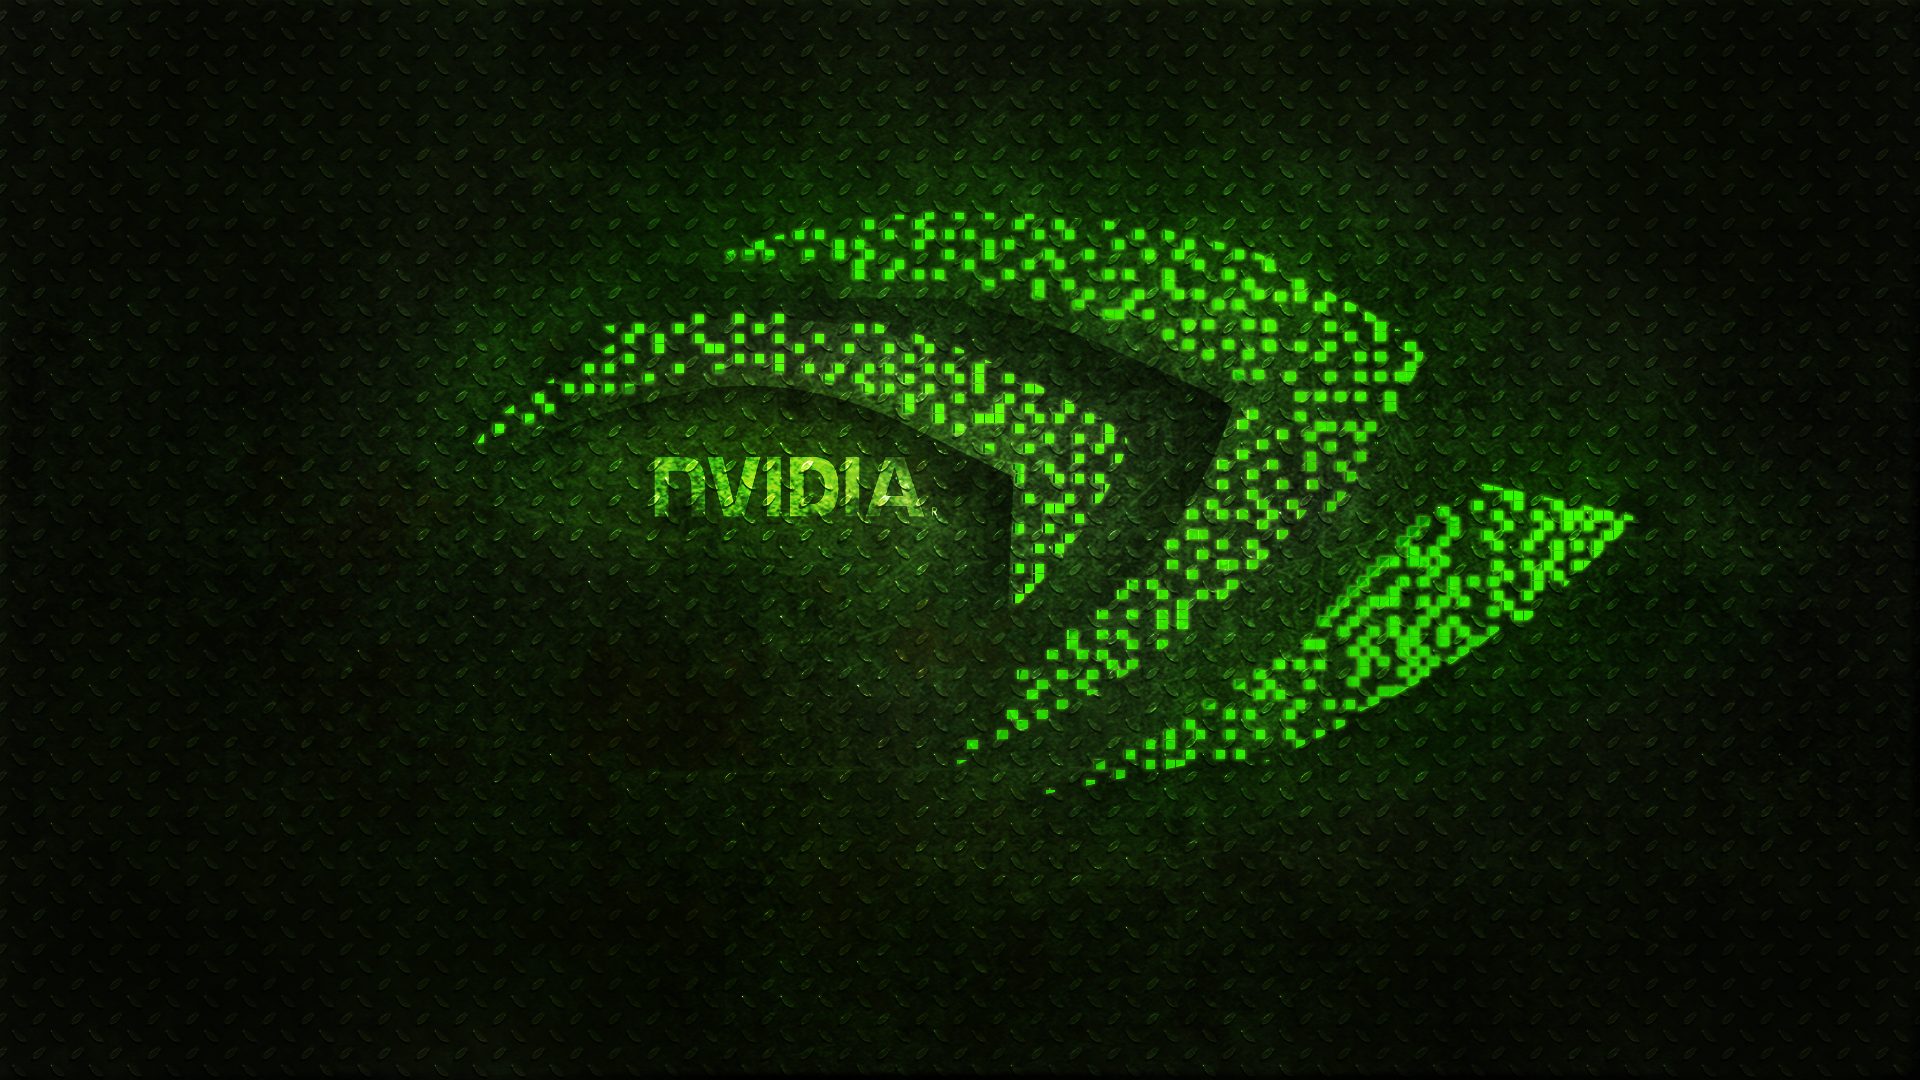 Wallpaper Wiki Pictures Nvidia Hd Free Download Pic